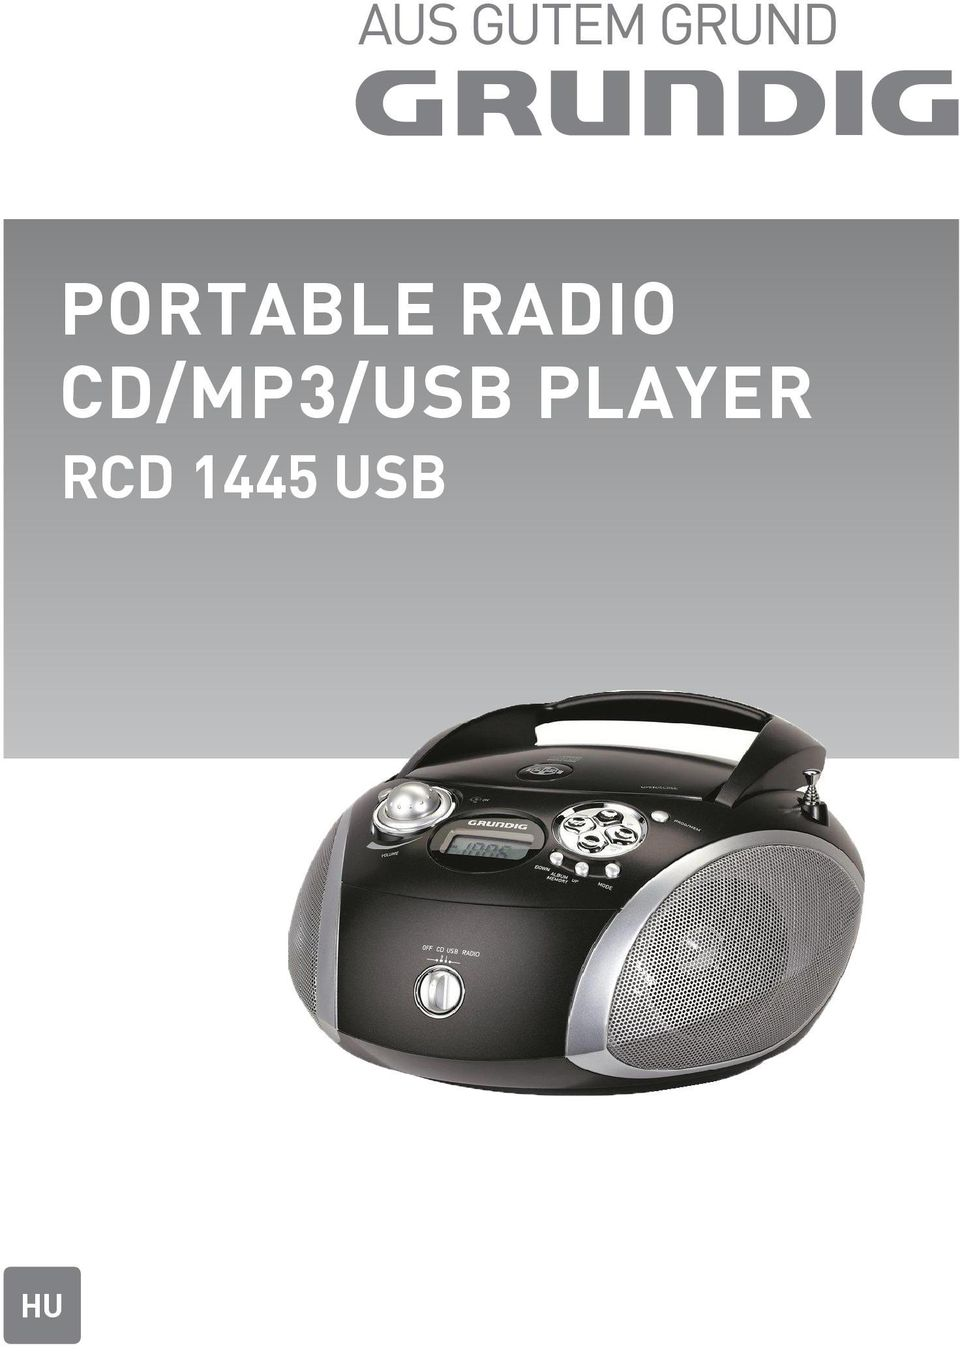 CD/MP3/USB